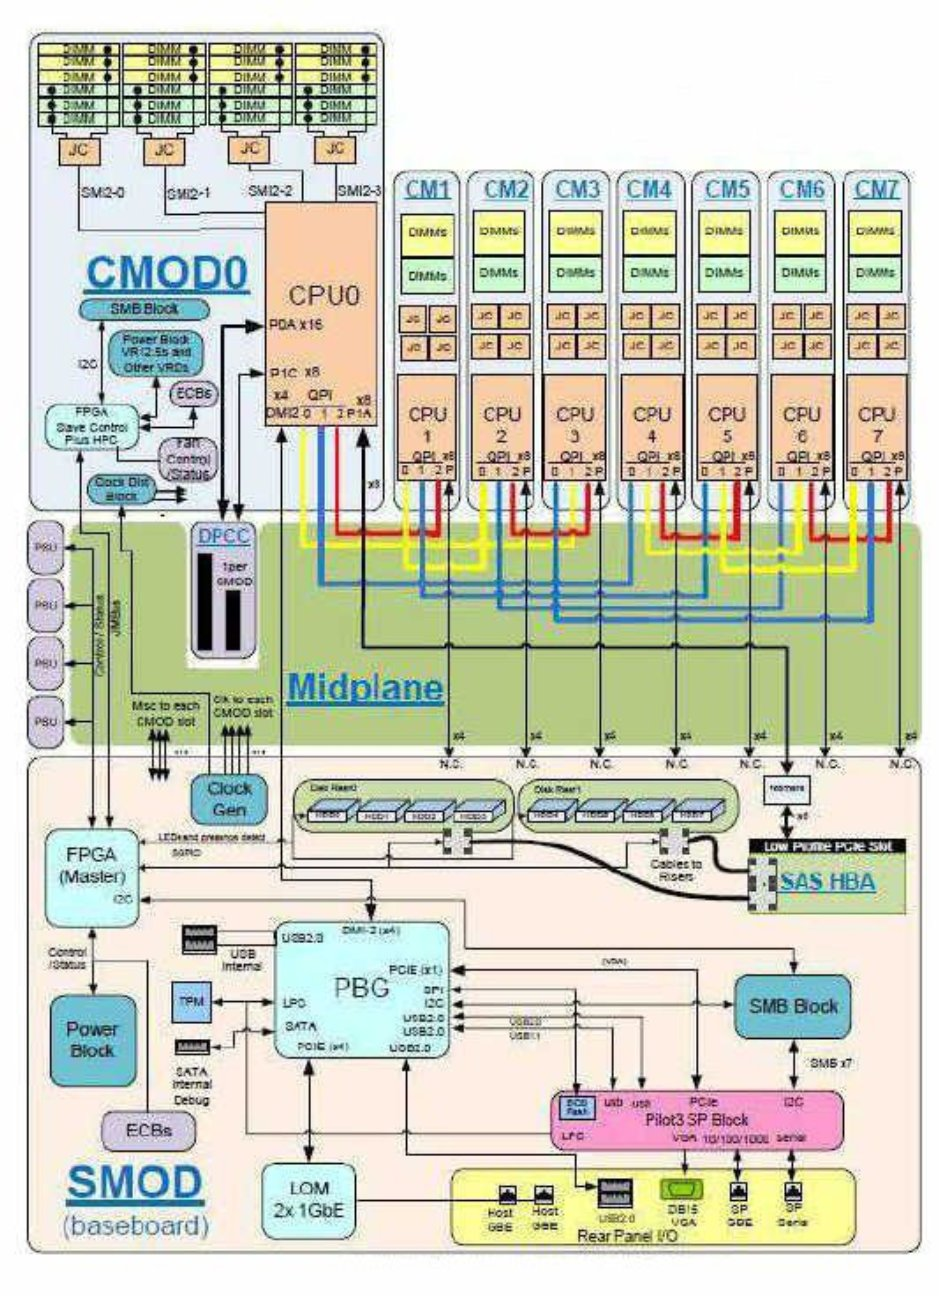 Server Block Diagram - Sun Server X4-8 Service ManualOracle Help Center